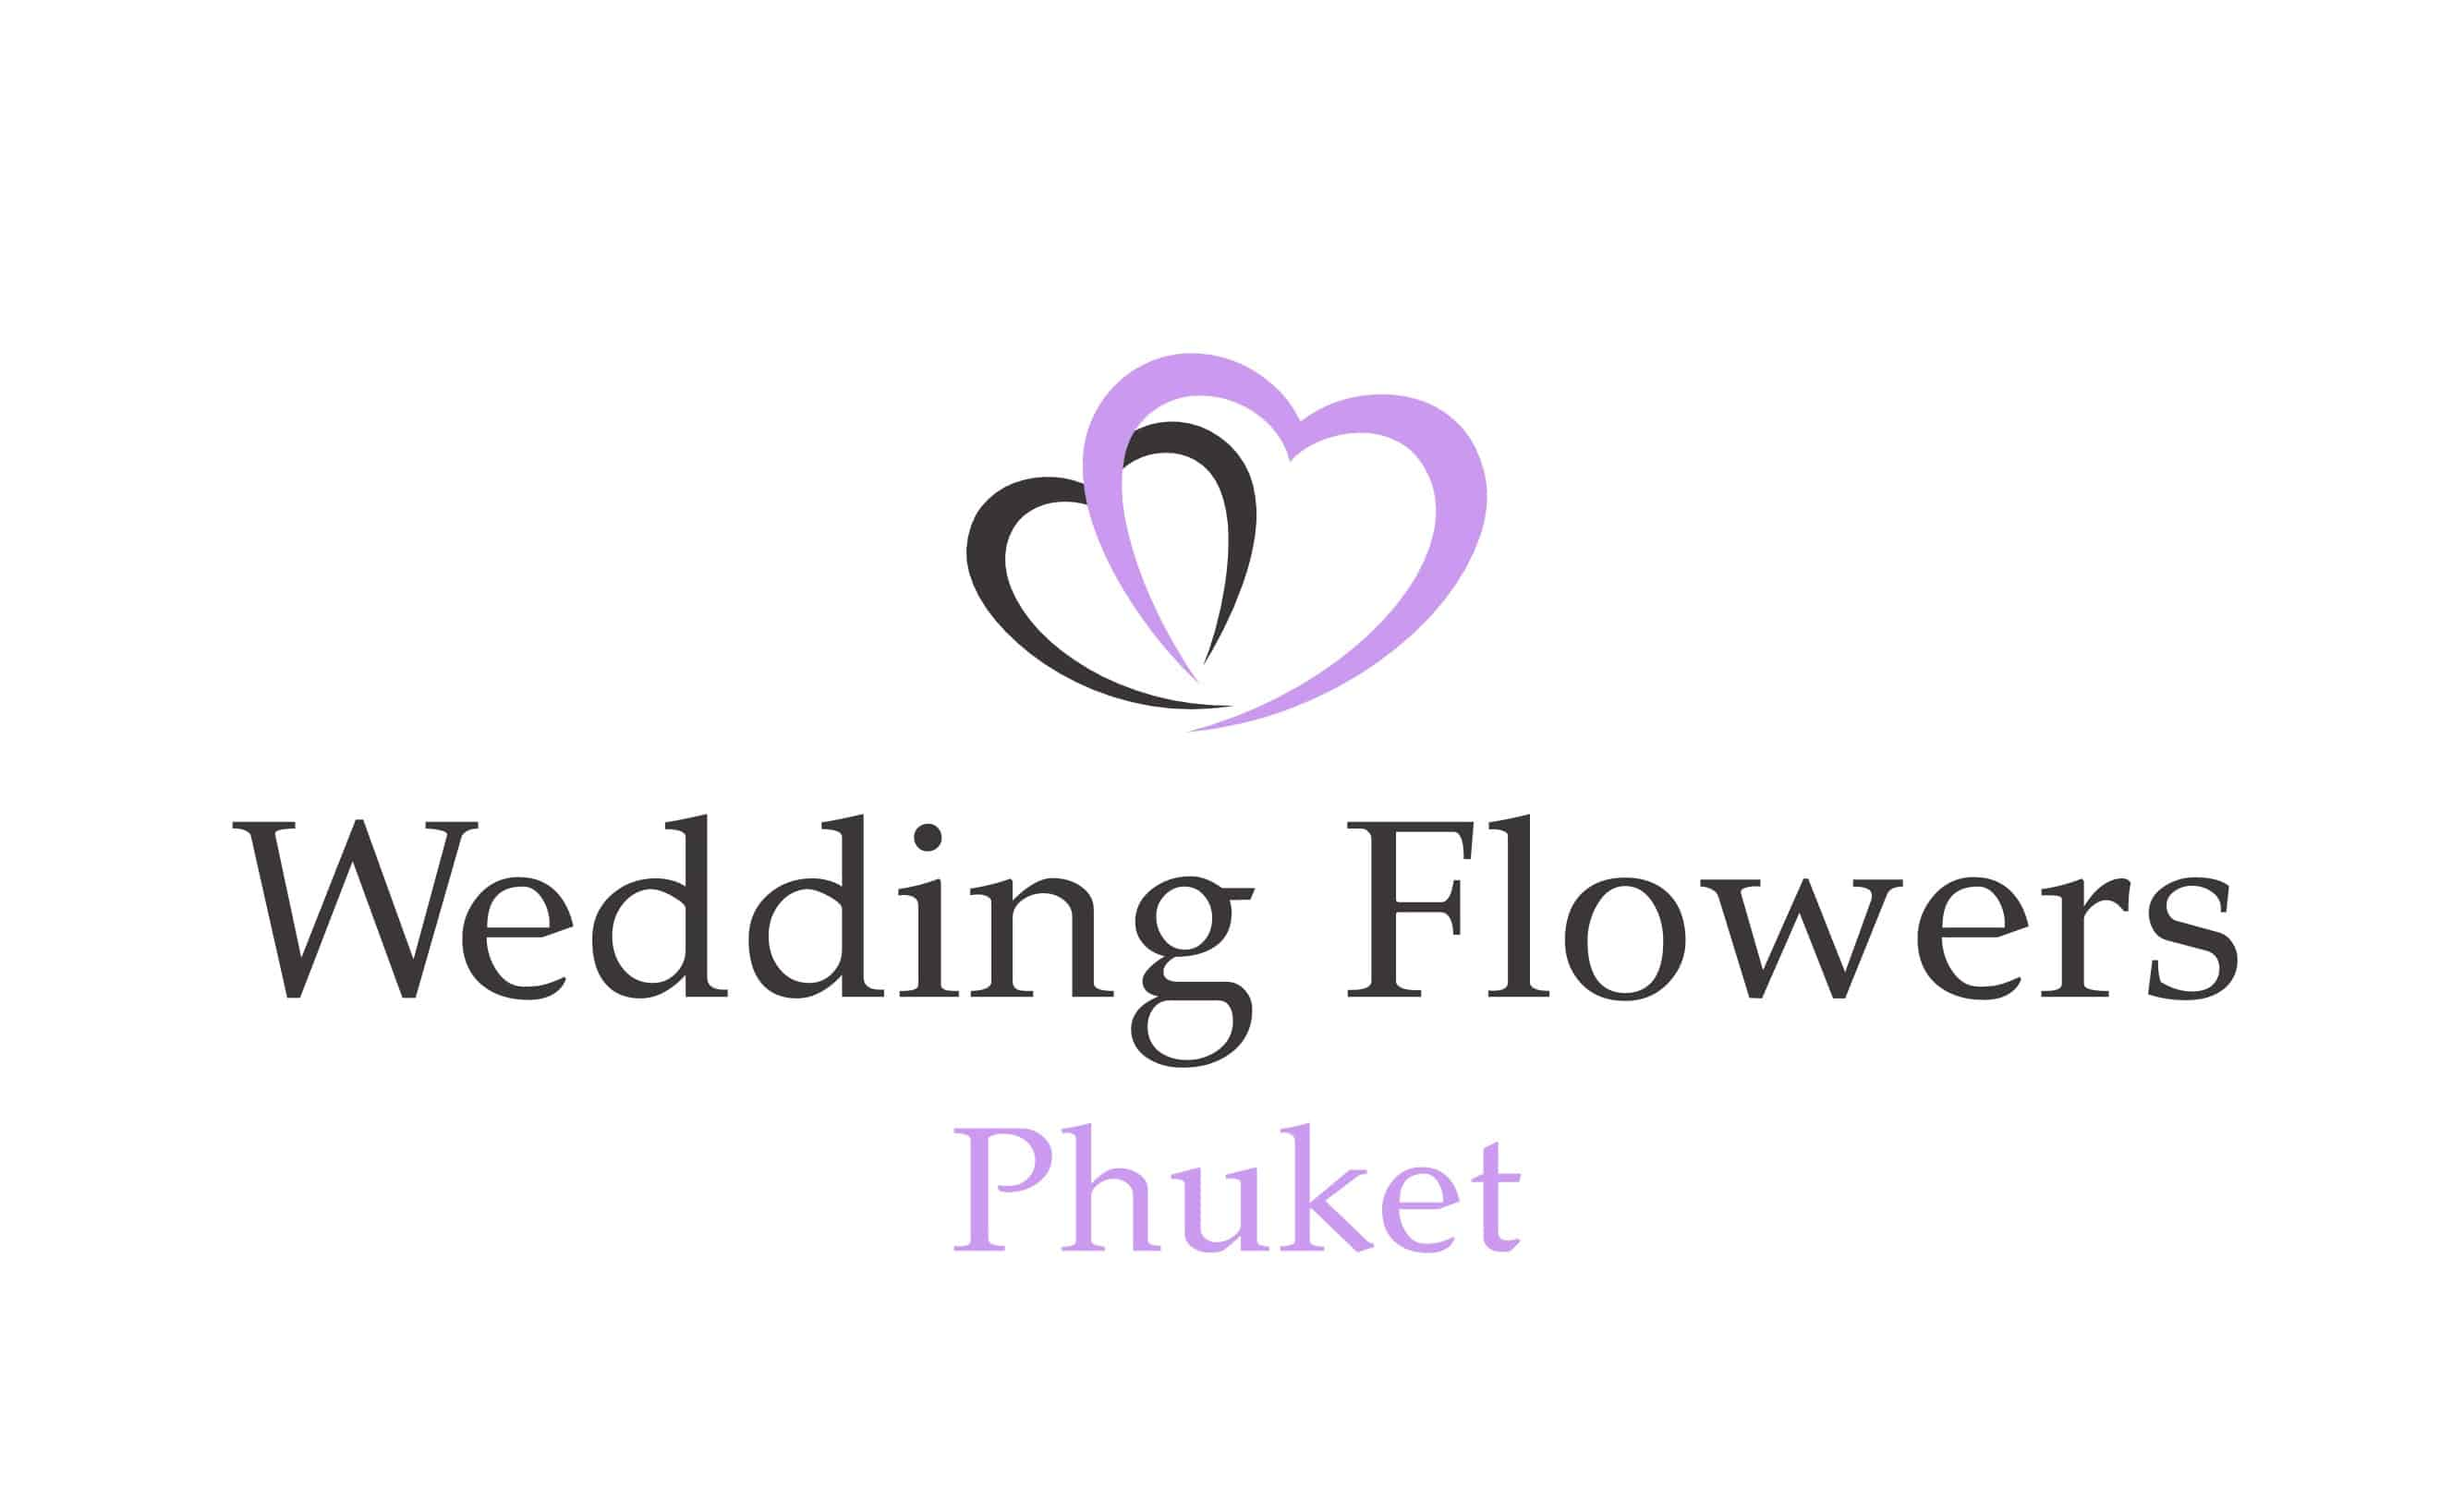 Wedding Flowers Phuket